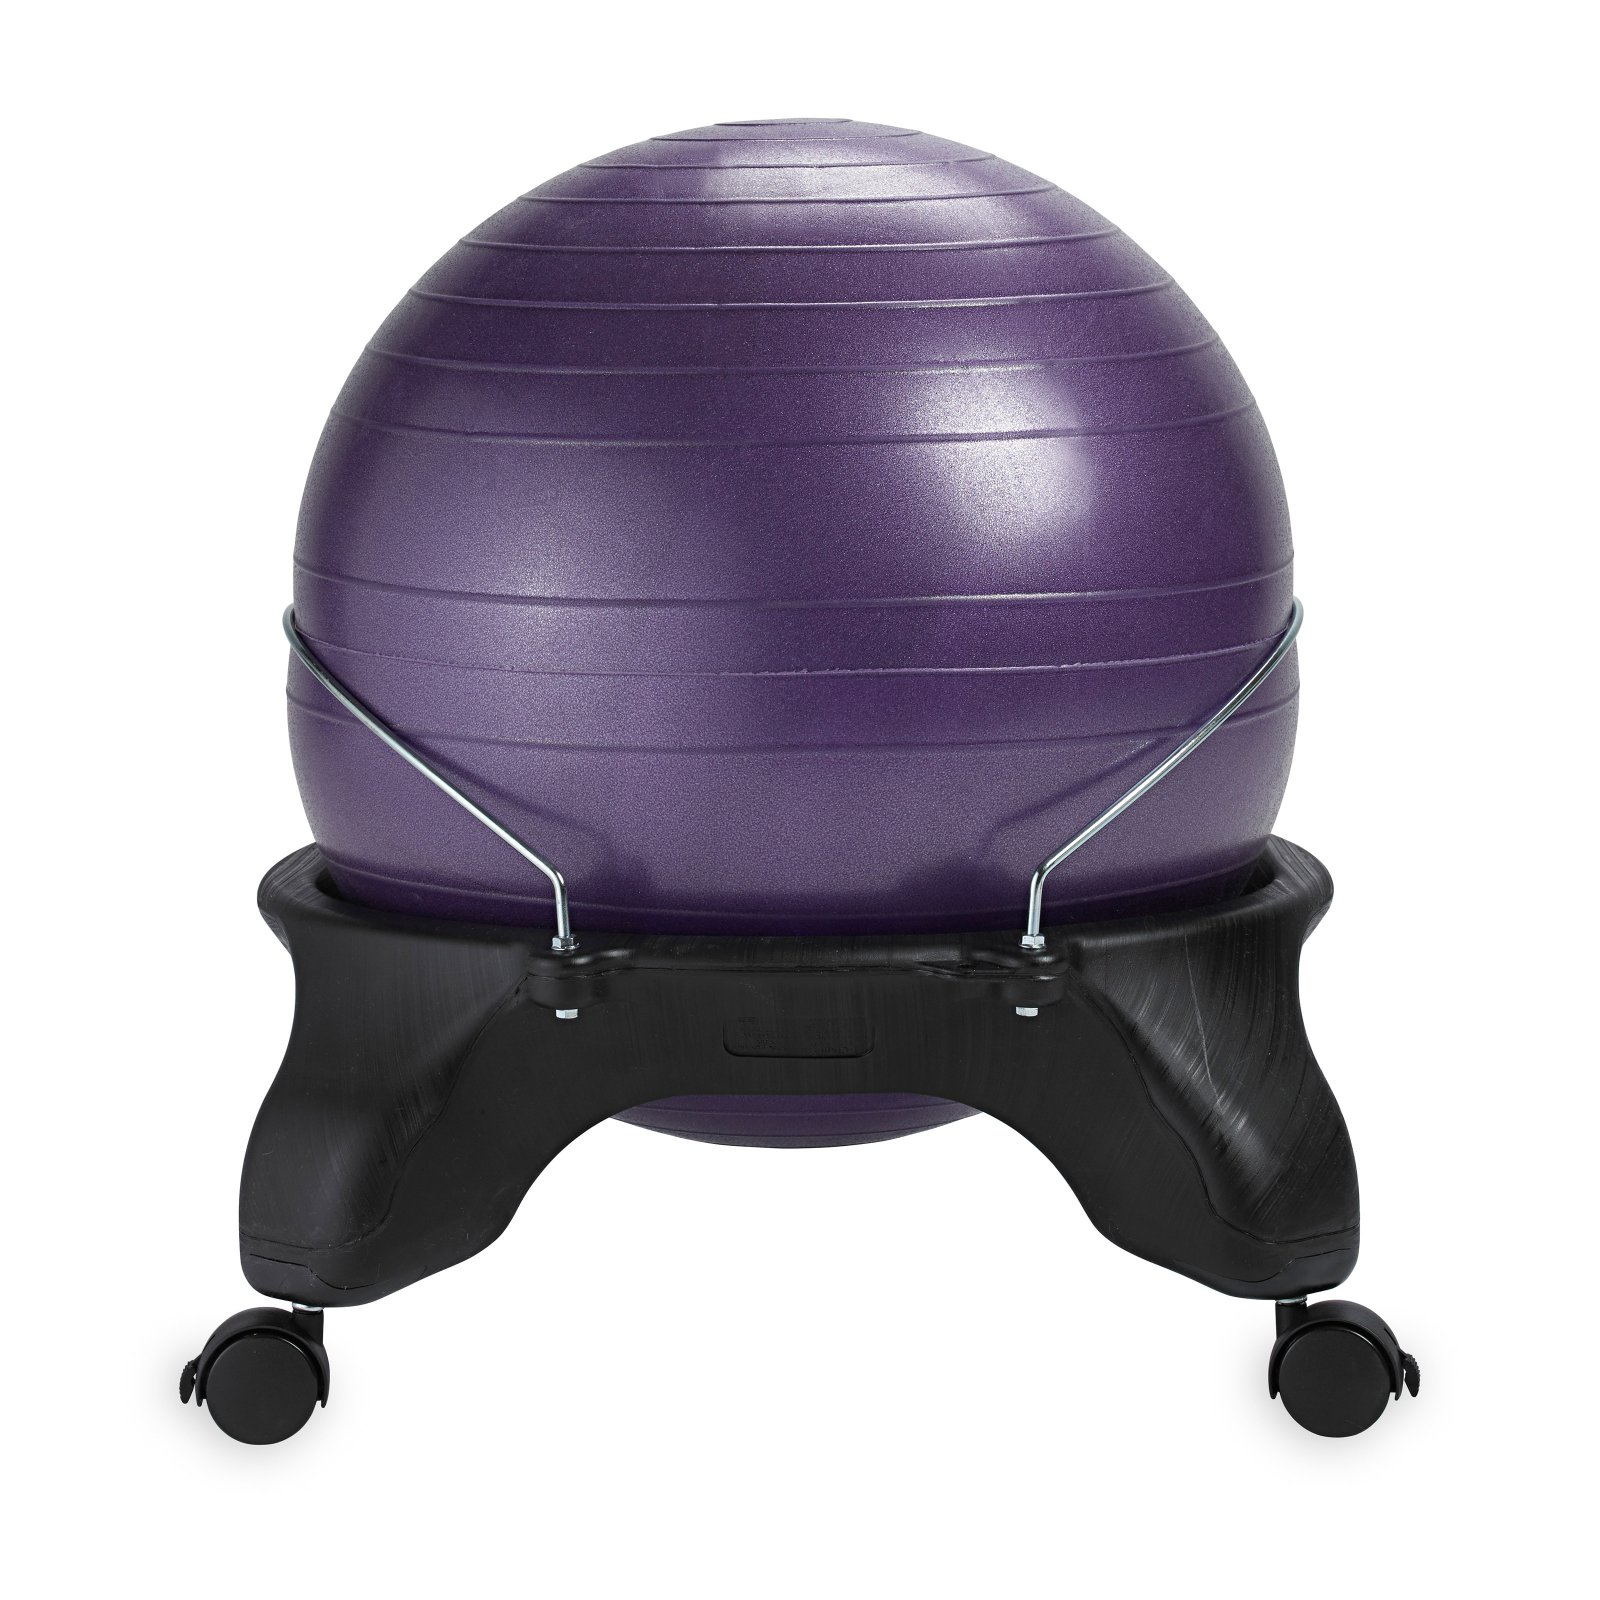 Gaiam Backless Balance Ball Chair, Purple